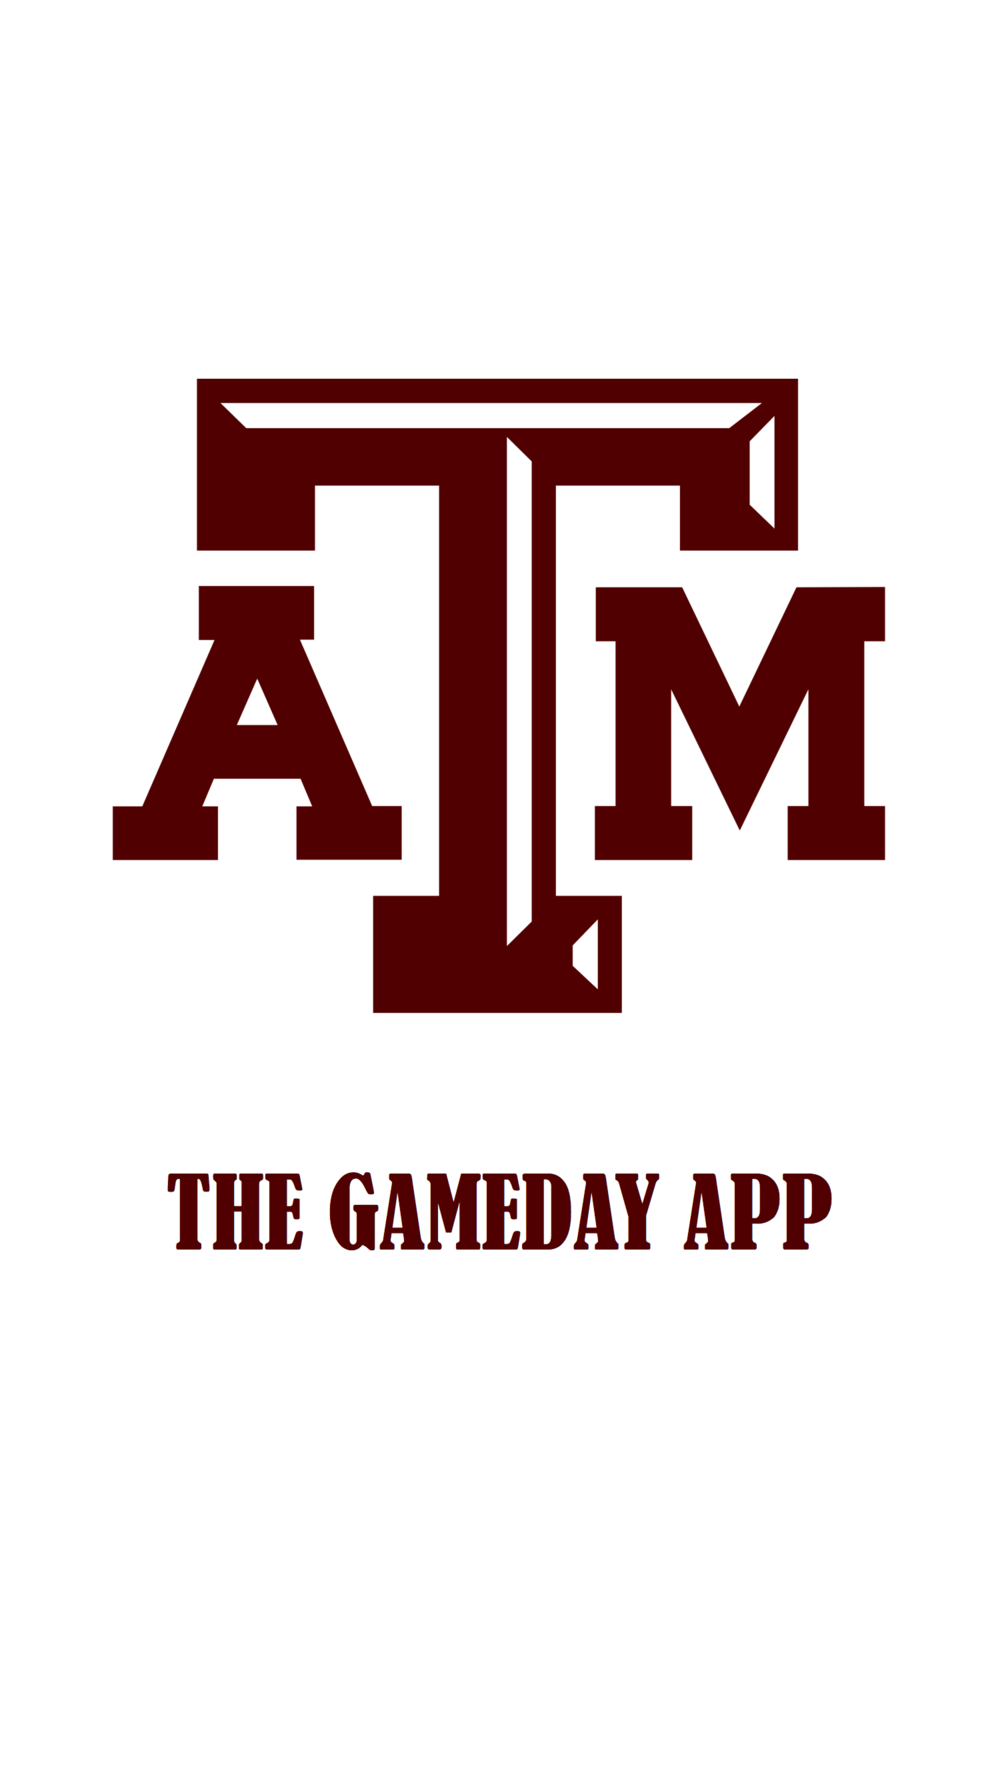 Splash - Texas A&M.png